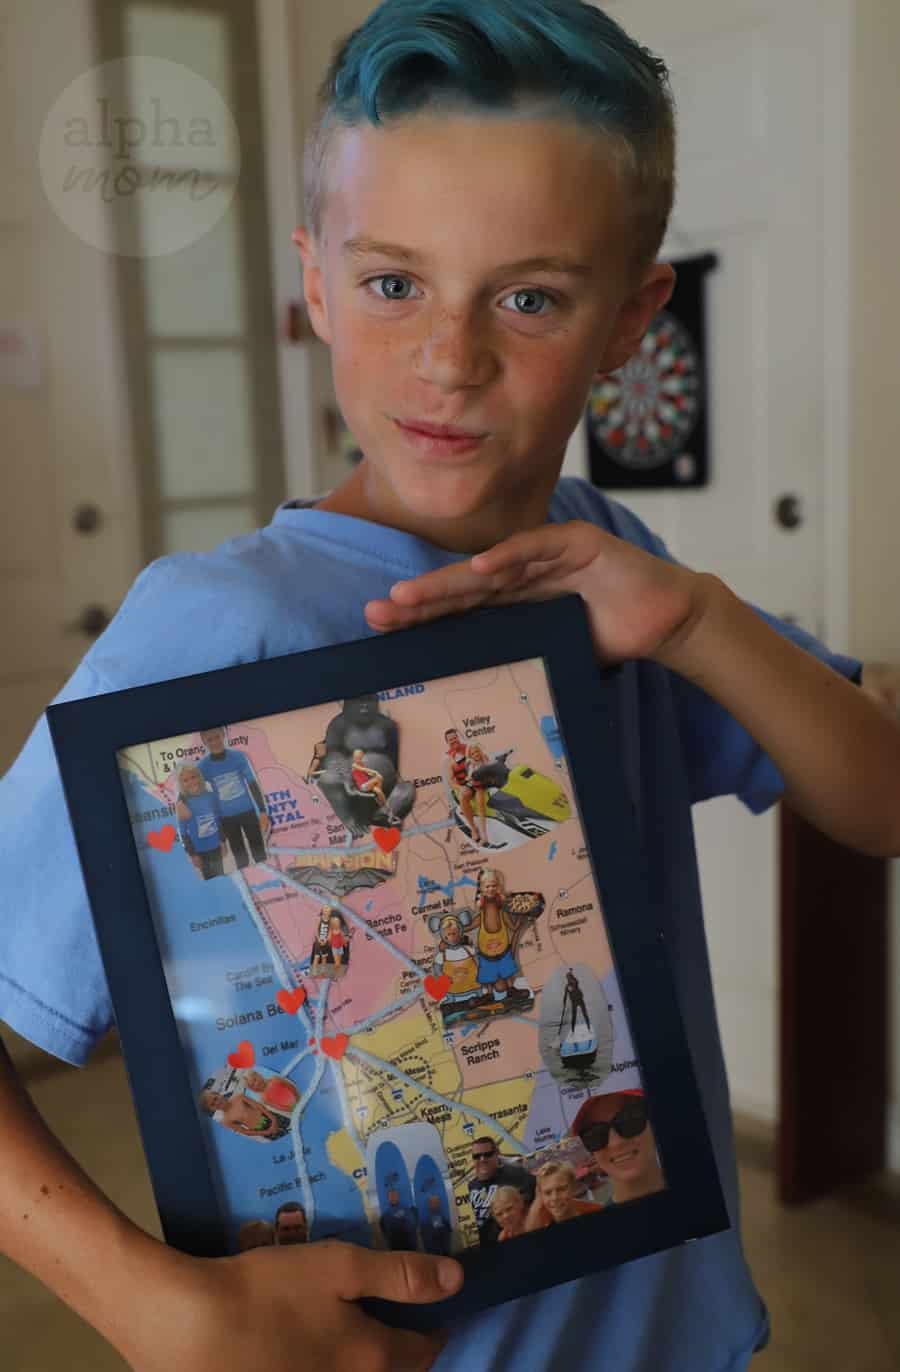 Boy holding a framed map with photos glued on them